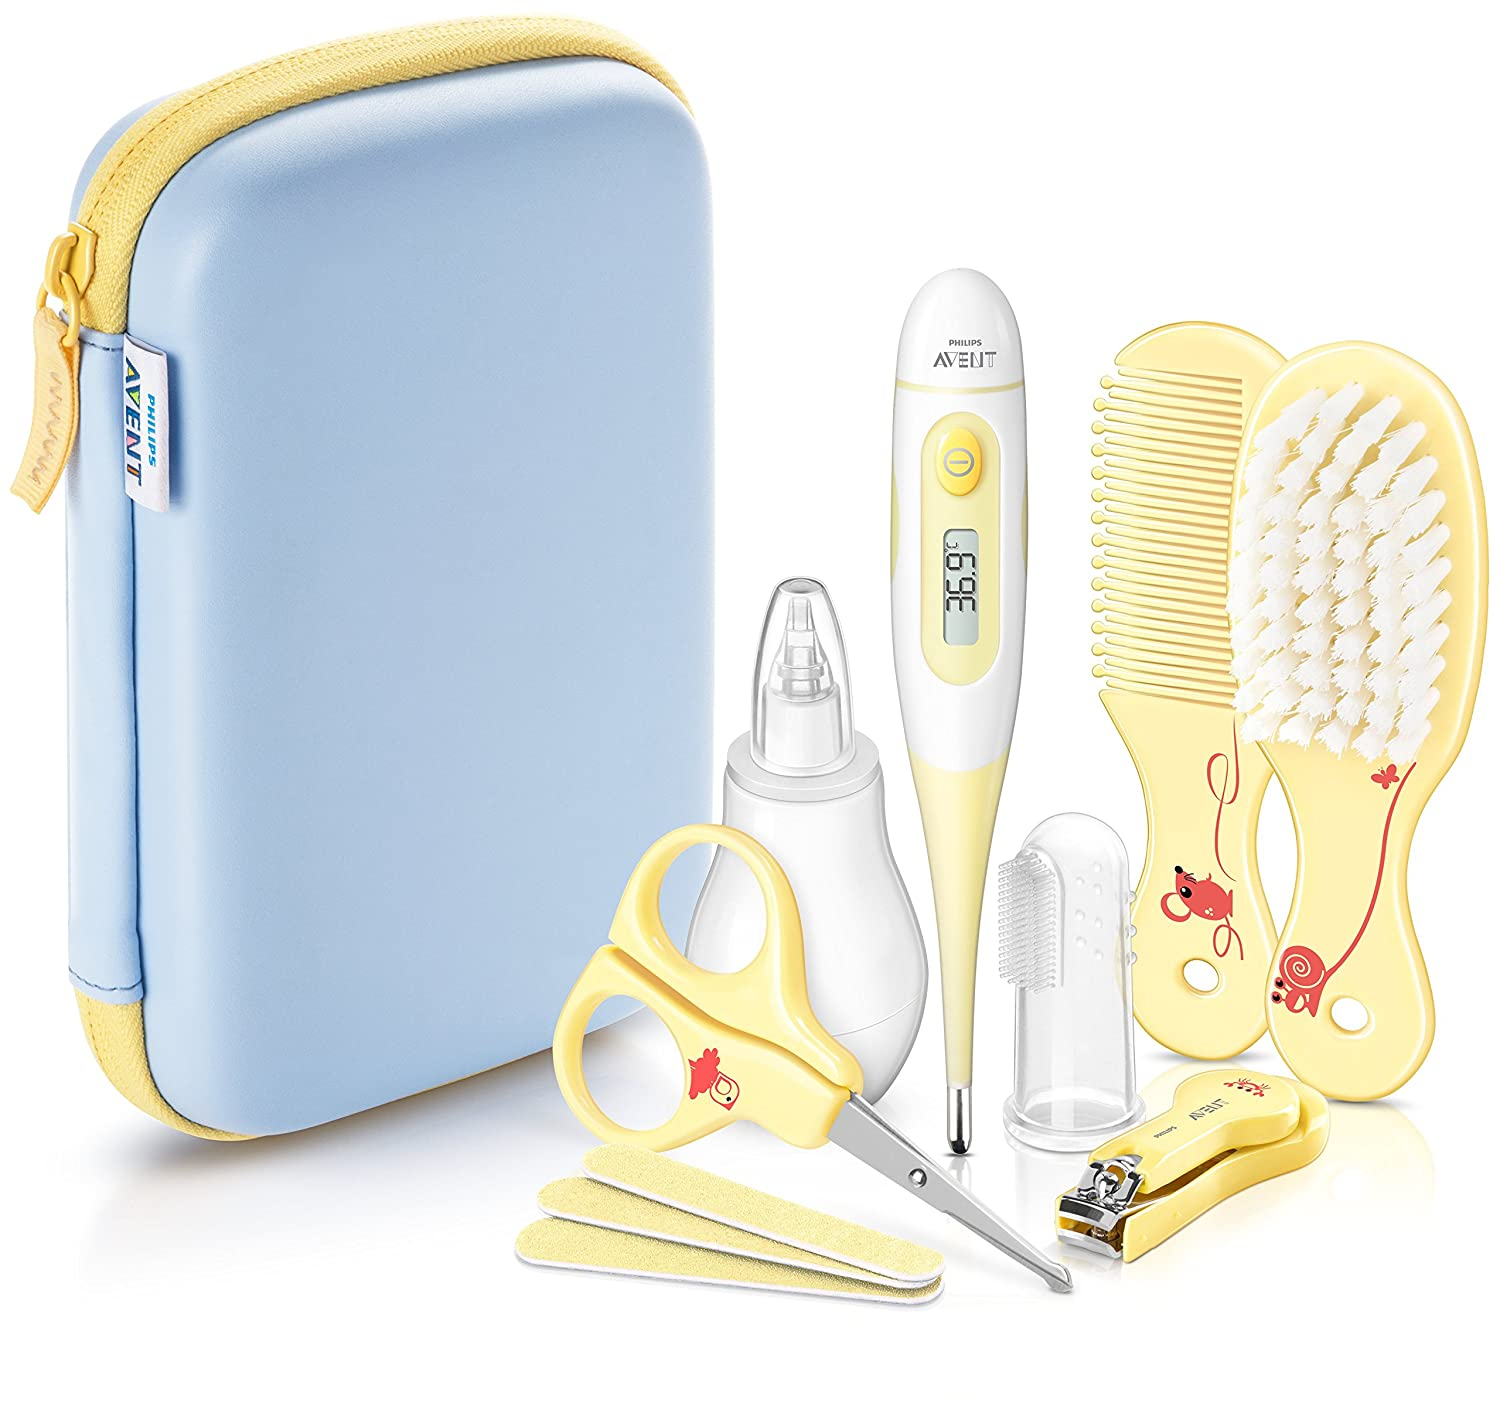 Philips AVENT Beauty Set For The Care Of Baby PHILIPS SpA 8710103653790